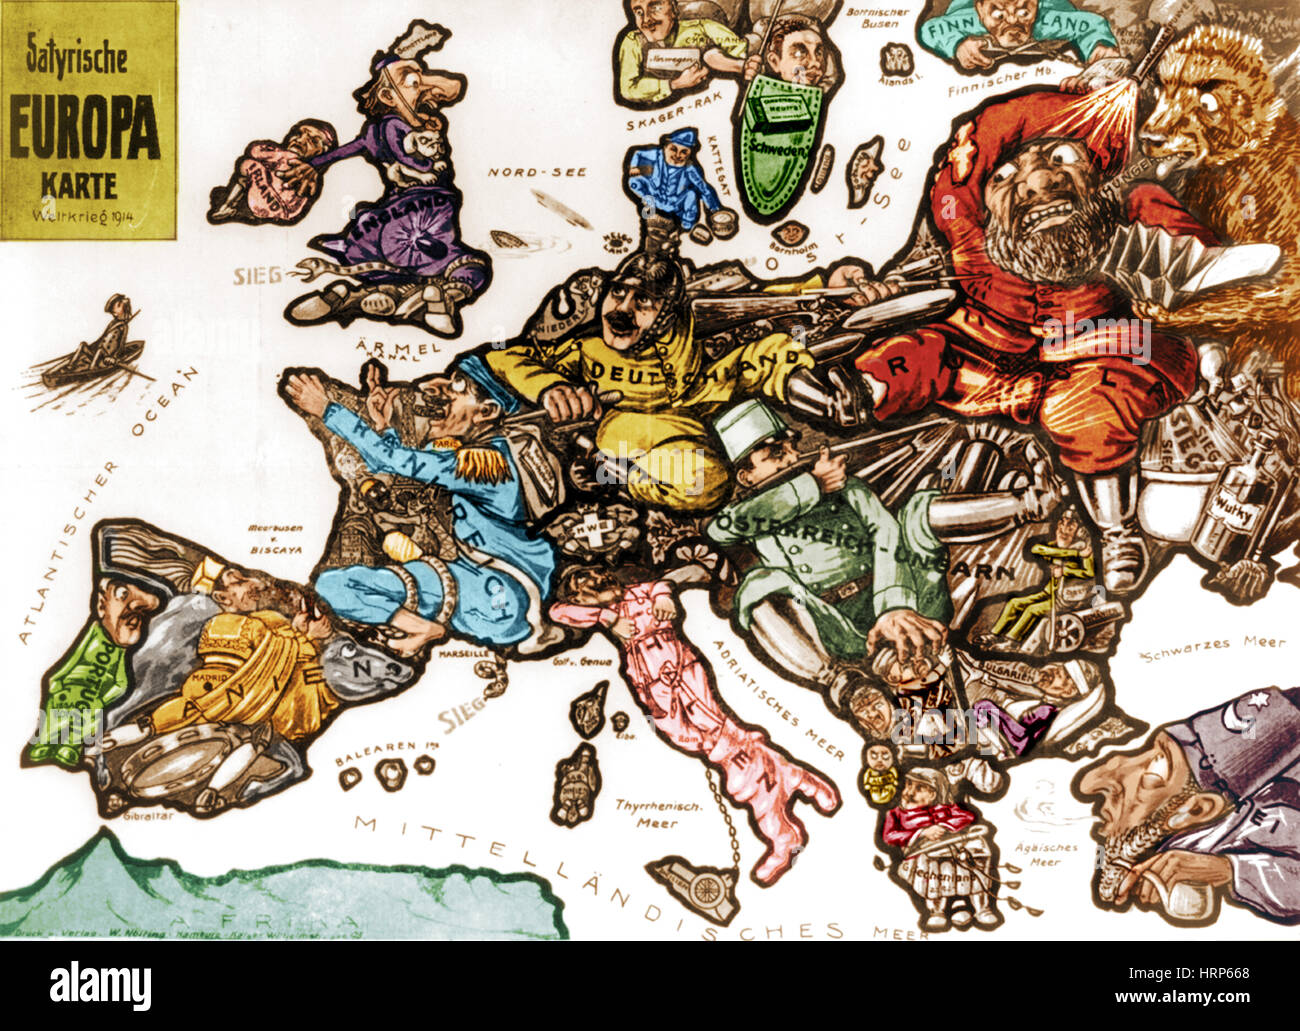 Map Europe 1914 Stock Photos & Map Europe 1914 Stock Images ...